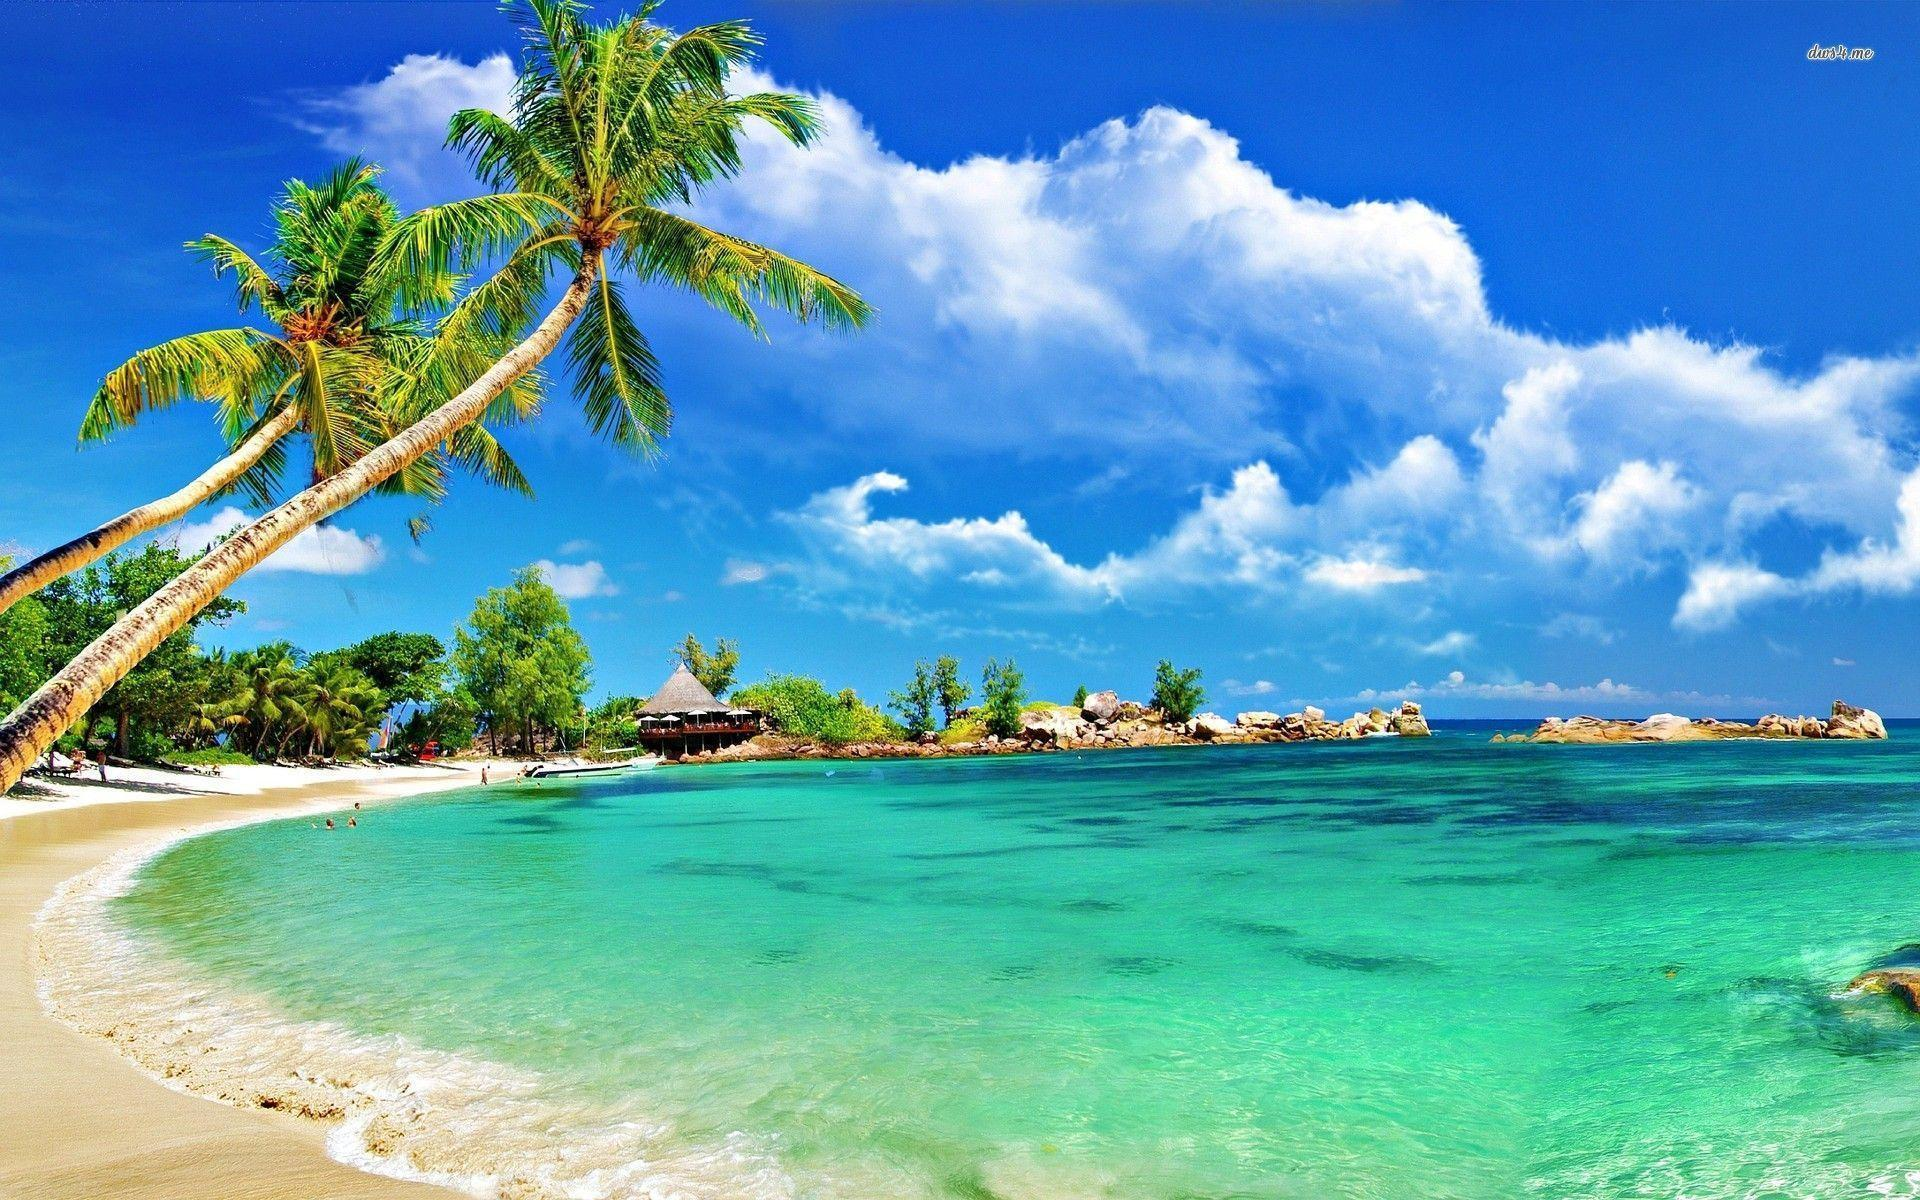 10 Best Tropical Beach Desktop Backgrounds Full Hd 1920: Tropical Beach Wallpapers Desktop